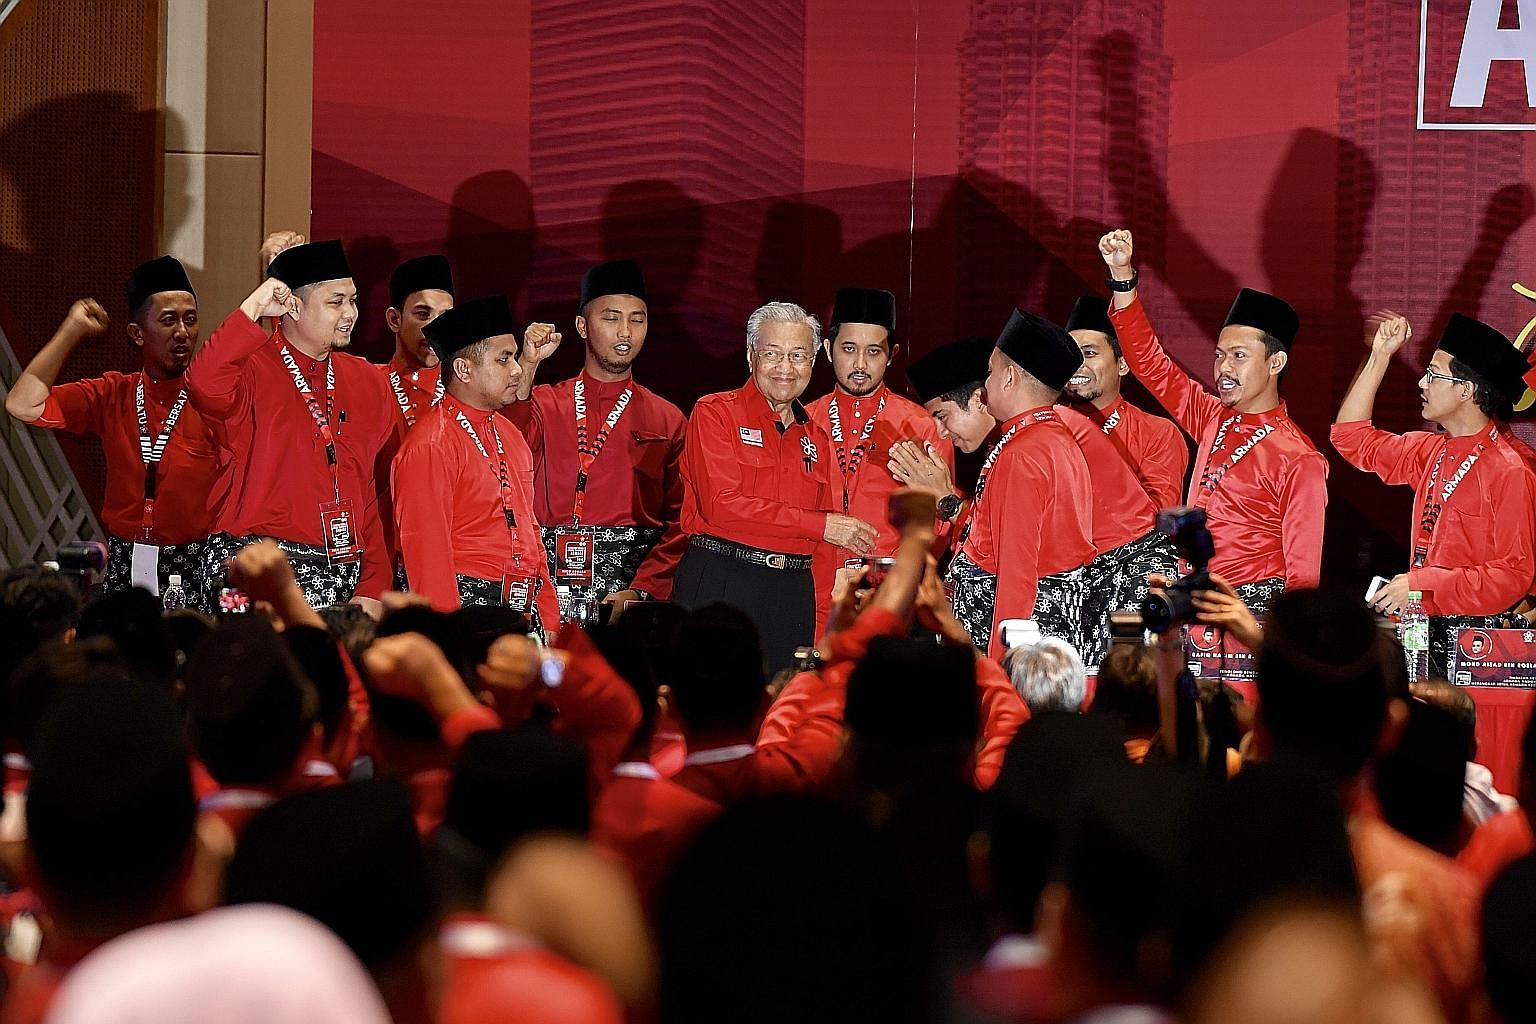 Parti Pribumi Bersatu Malaysia chairman Mahathir Mohamad (centre) being greeted by PPBM Youth leader Syed Saddiq Syed Abdul Rahman and youth delegates at the Putrajaya International Convention Centre yesterday. They were attending a joint session, he